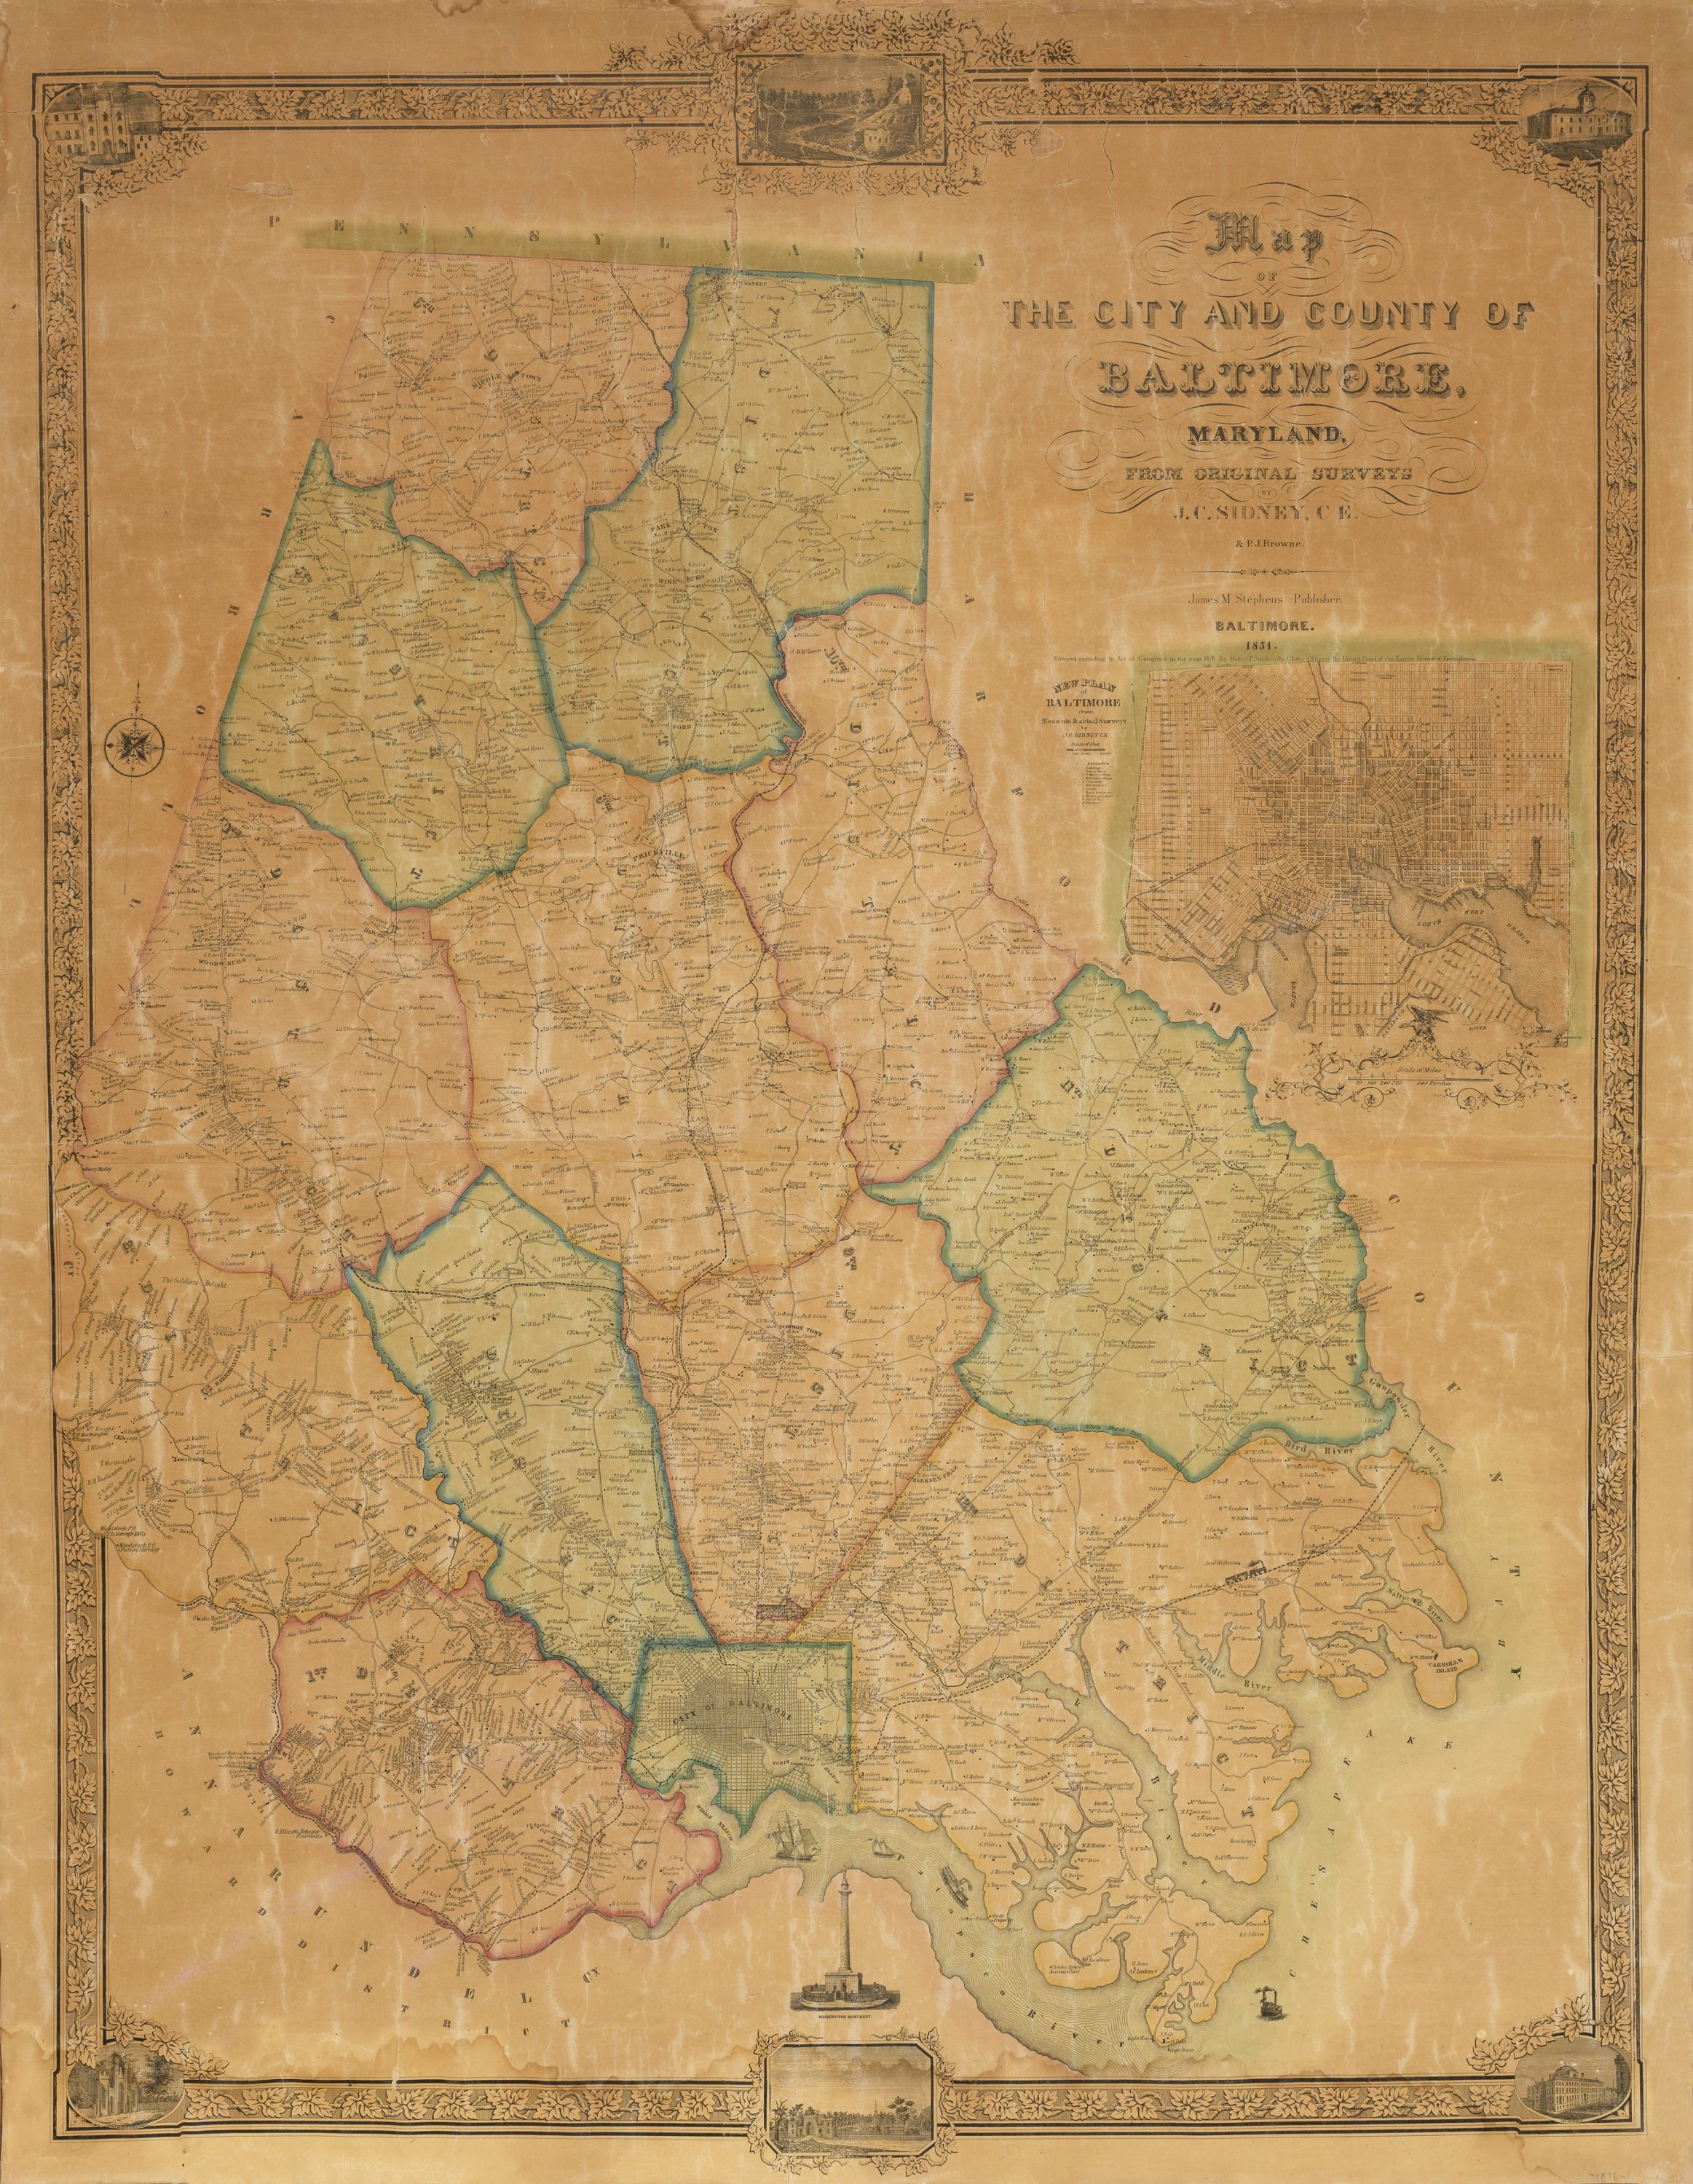 The First Printed Map Of Baltimore County Maryland Rare - Maryland county map